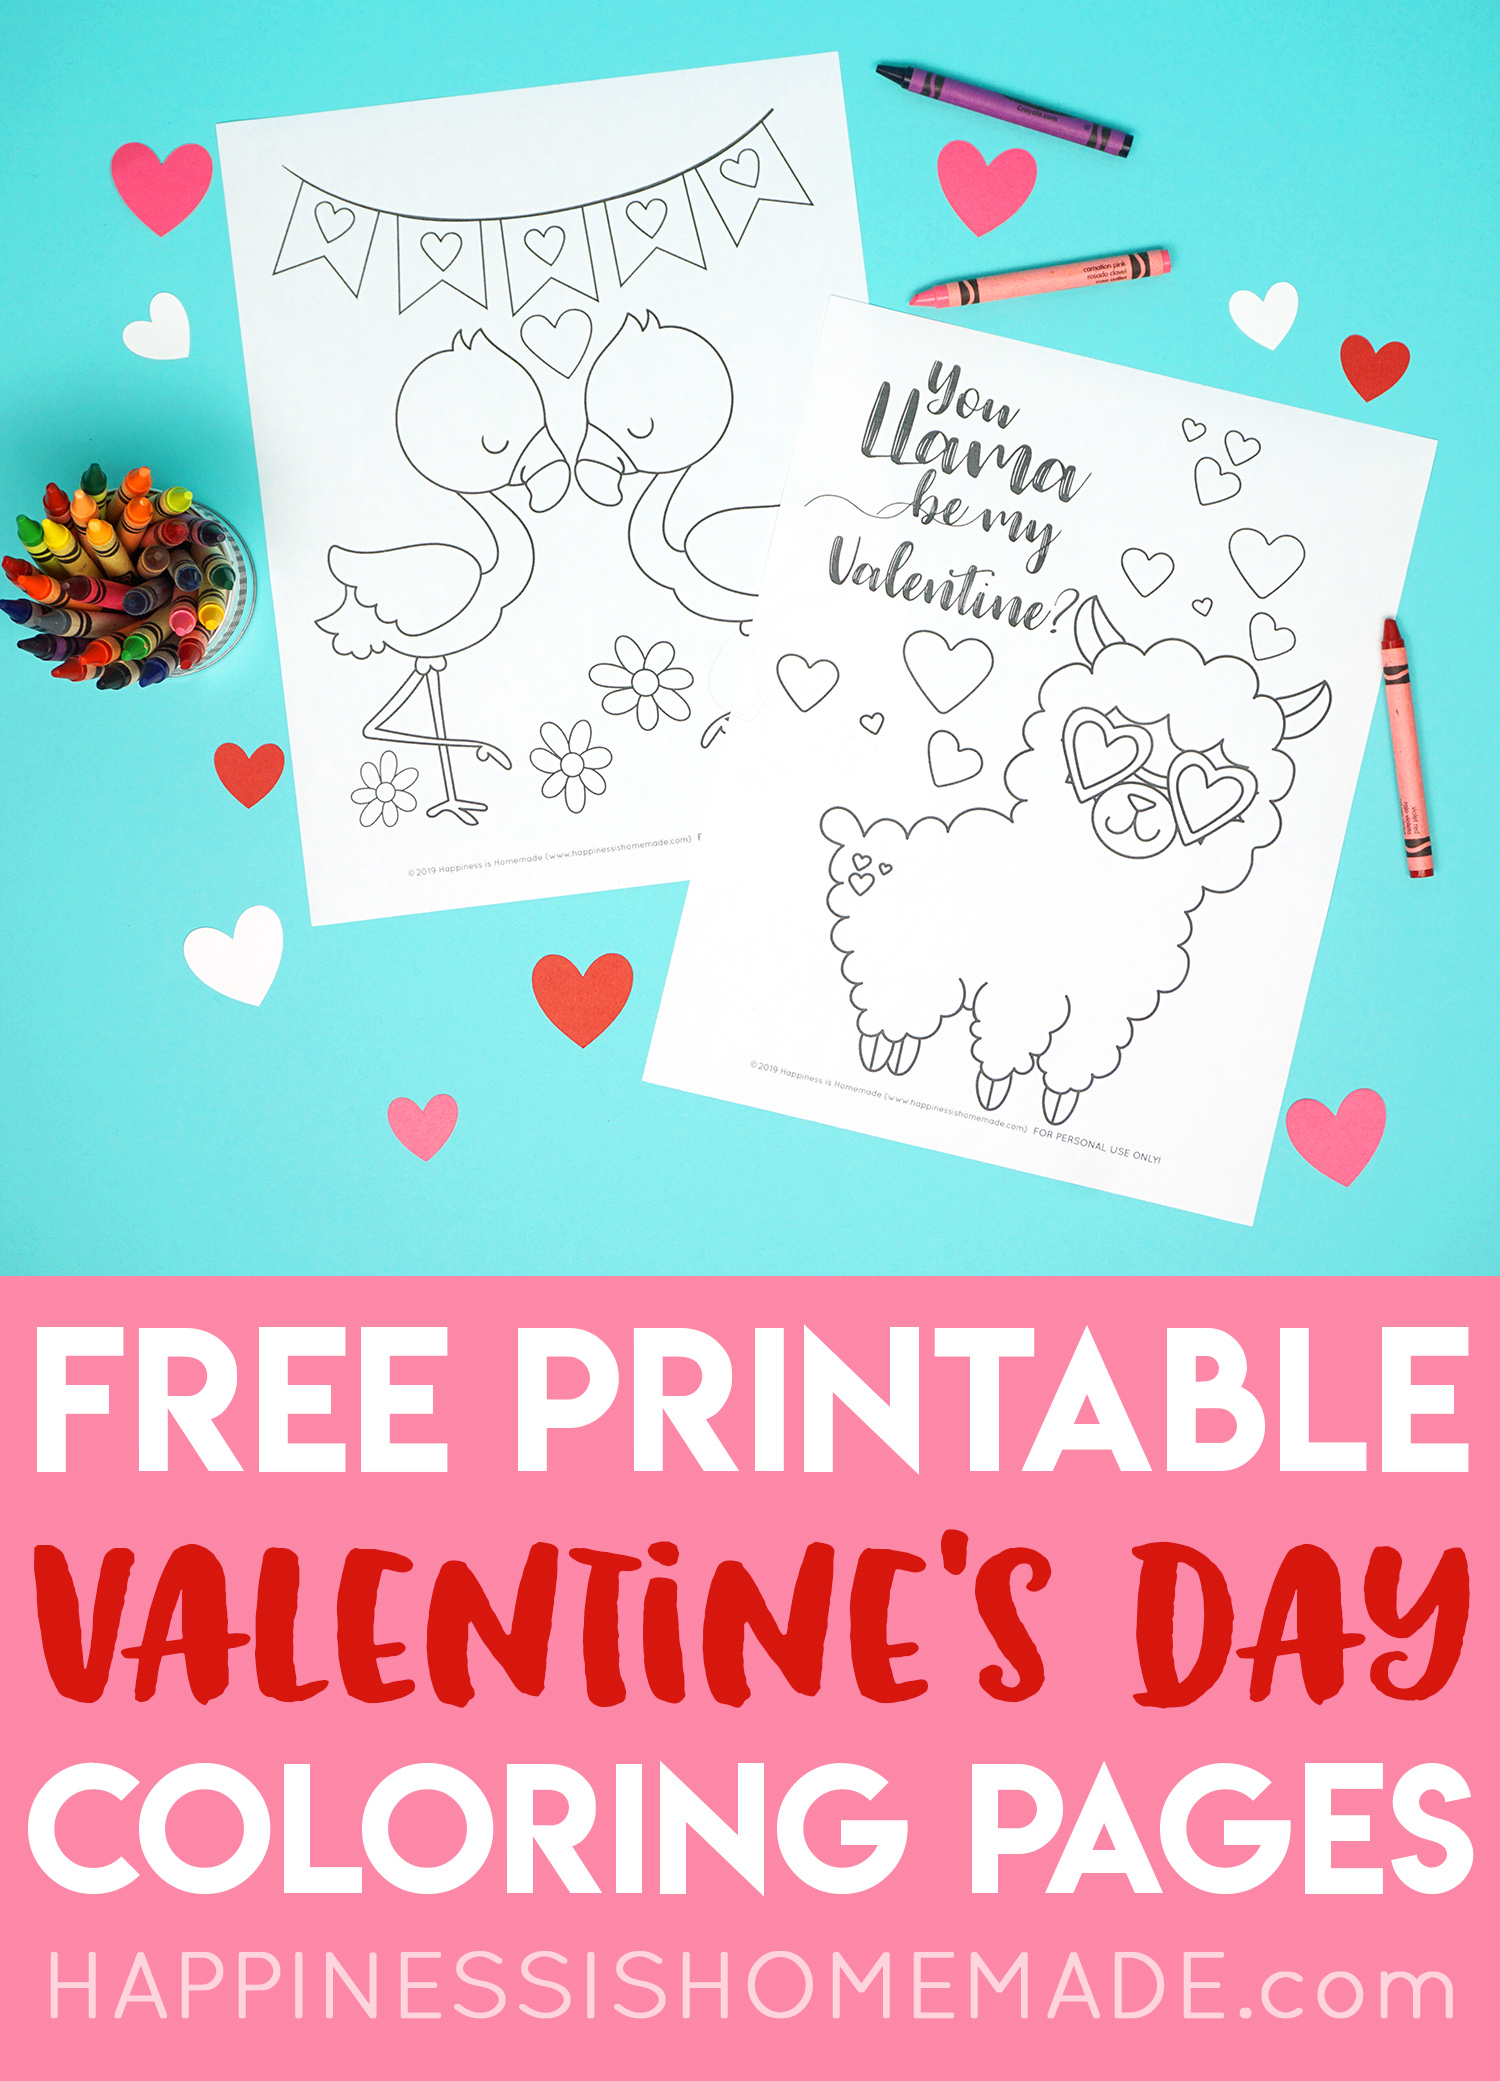 photo relating to Printable Valentine Picture named Printable Valentine Coloring Internet pages - Contentment is Handmade